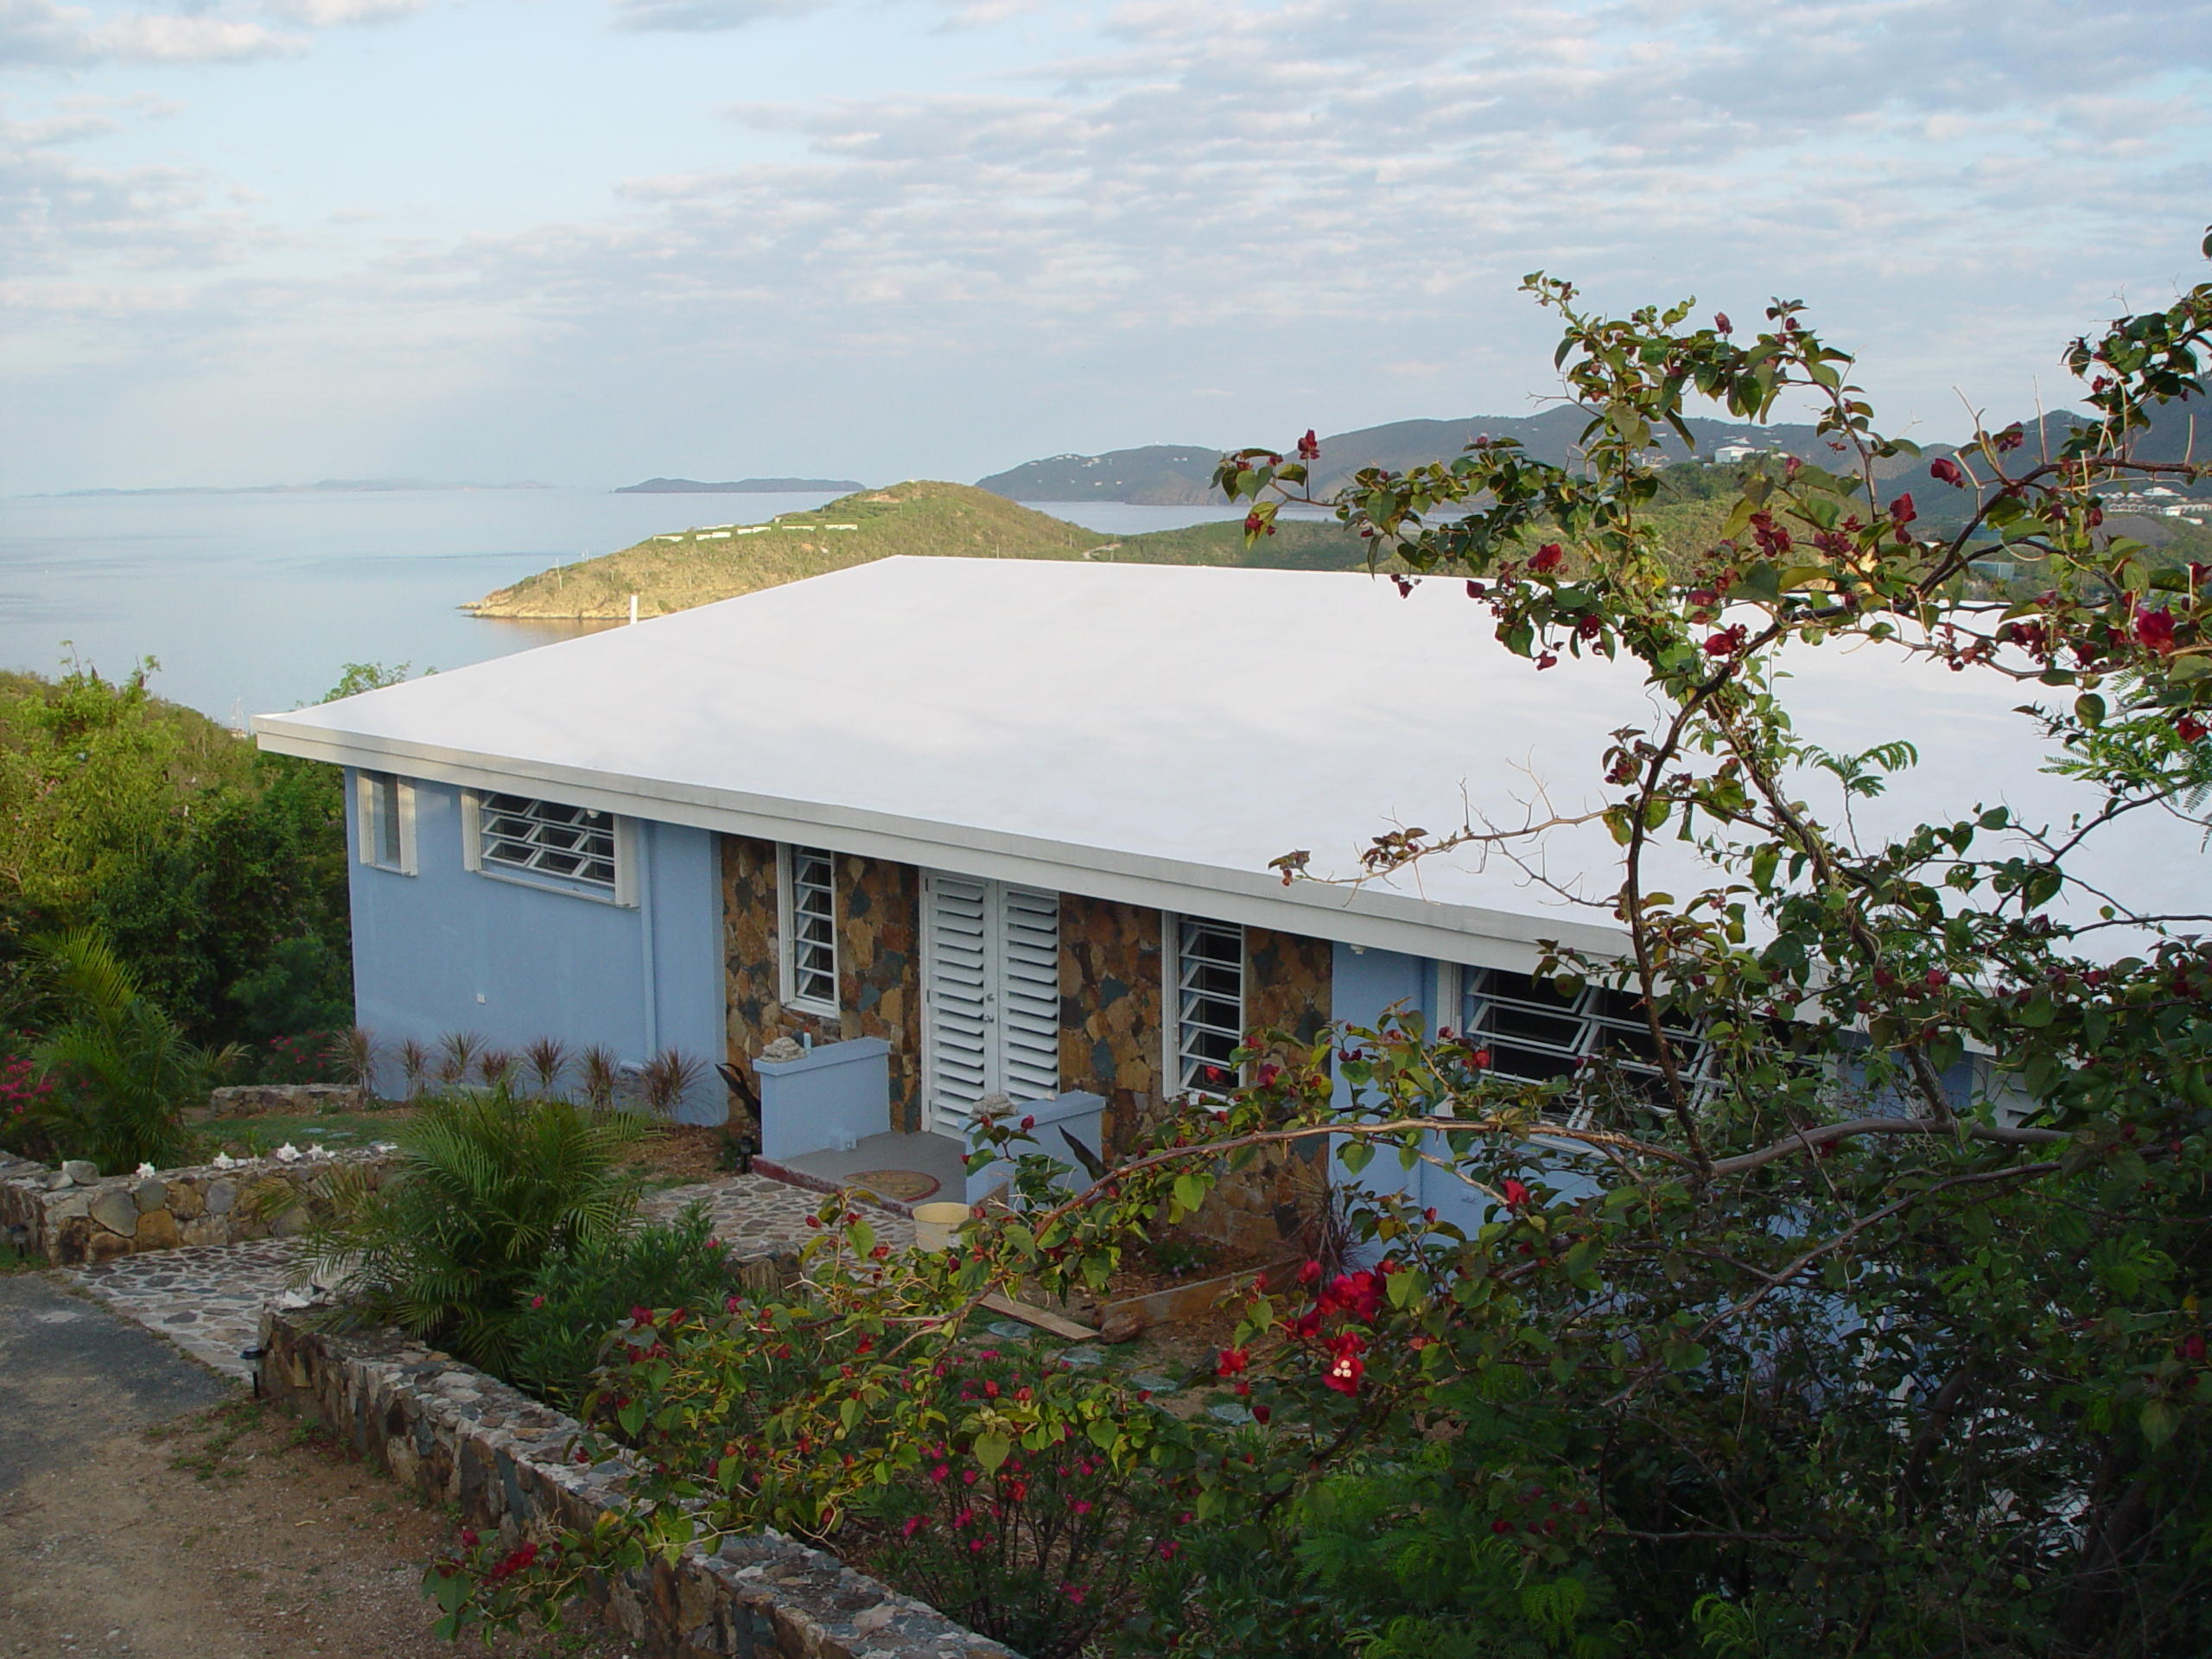 Single Family Home for Sale at Parcel 113 Water Island SS Parcel 113 Water Island SS St Thomas, Virgin Islands 00802 United States Virgin Islands